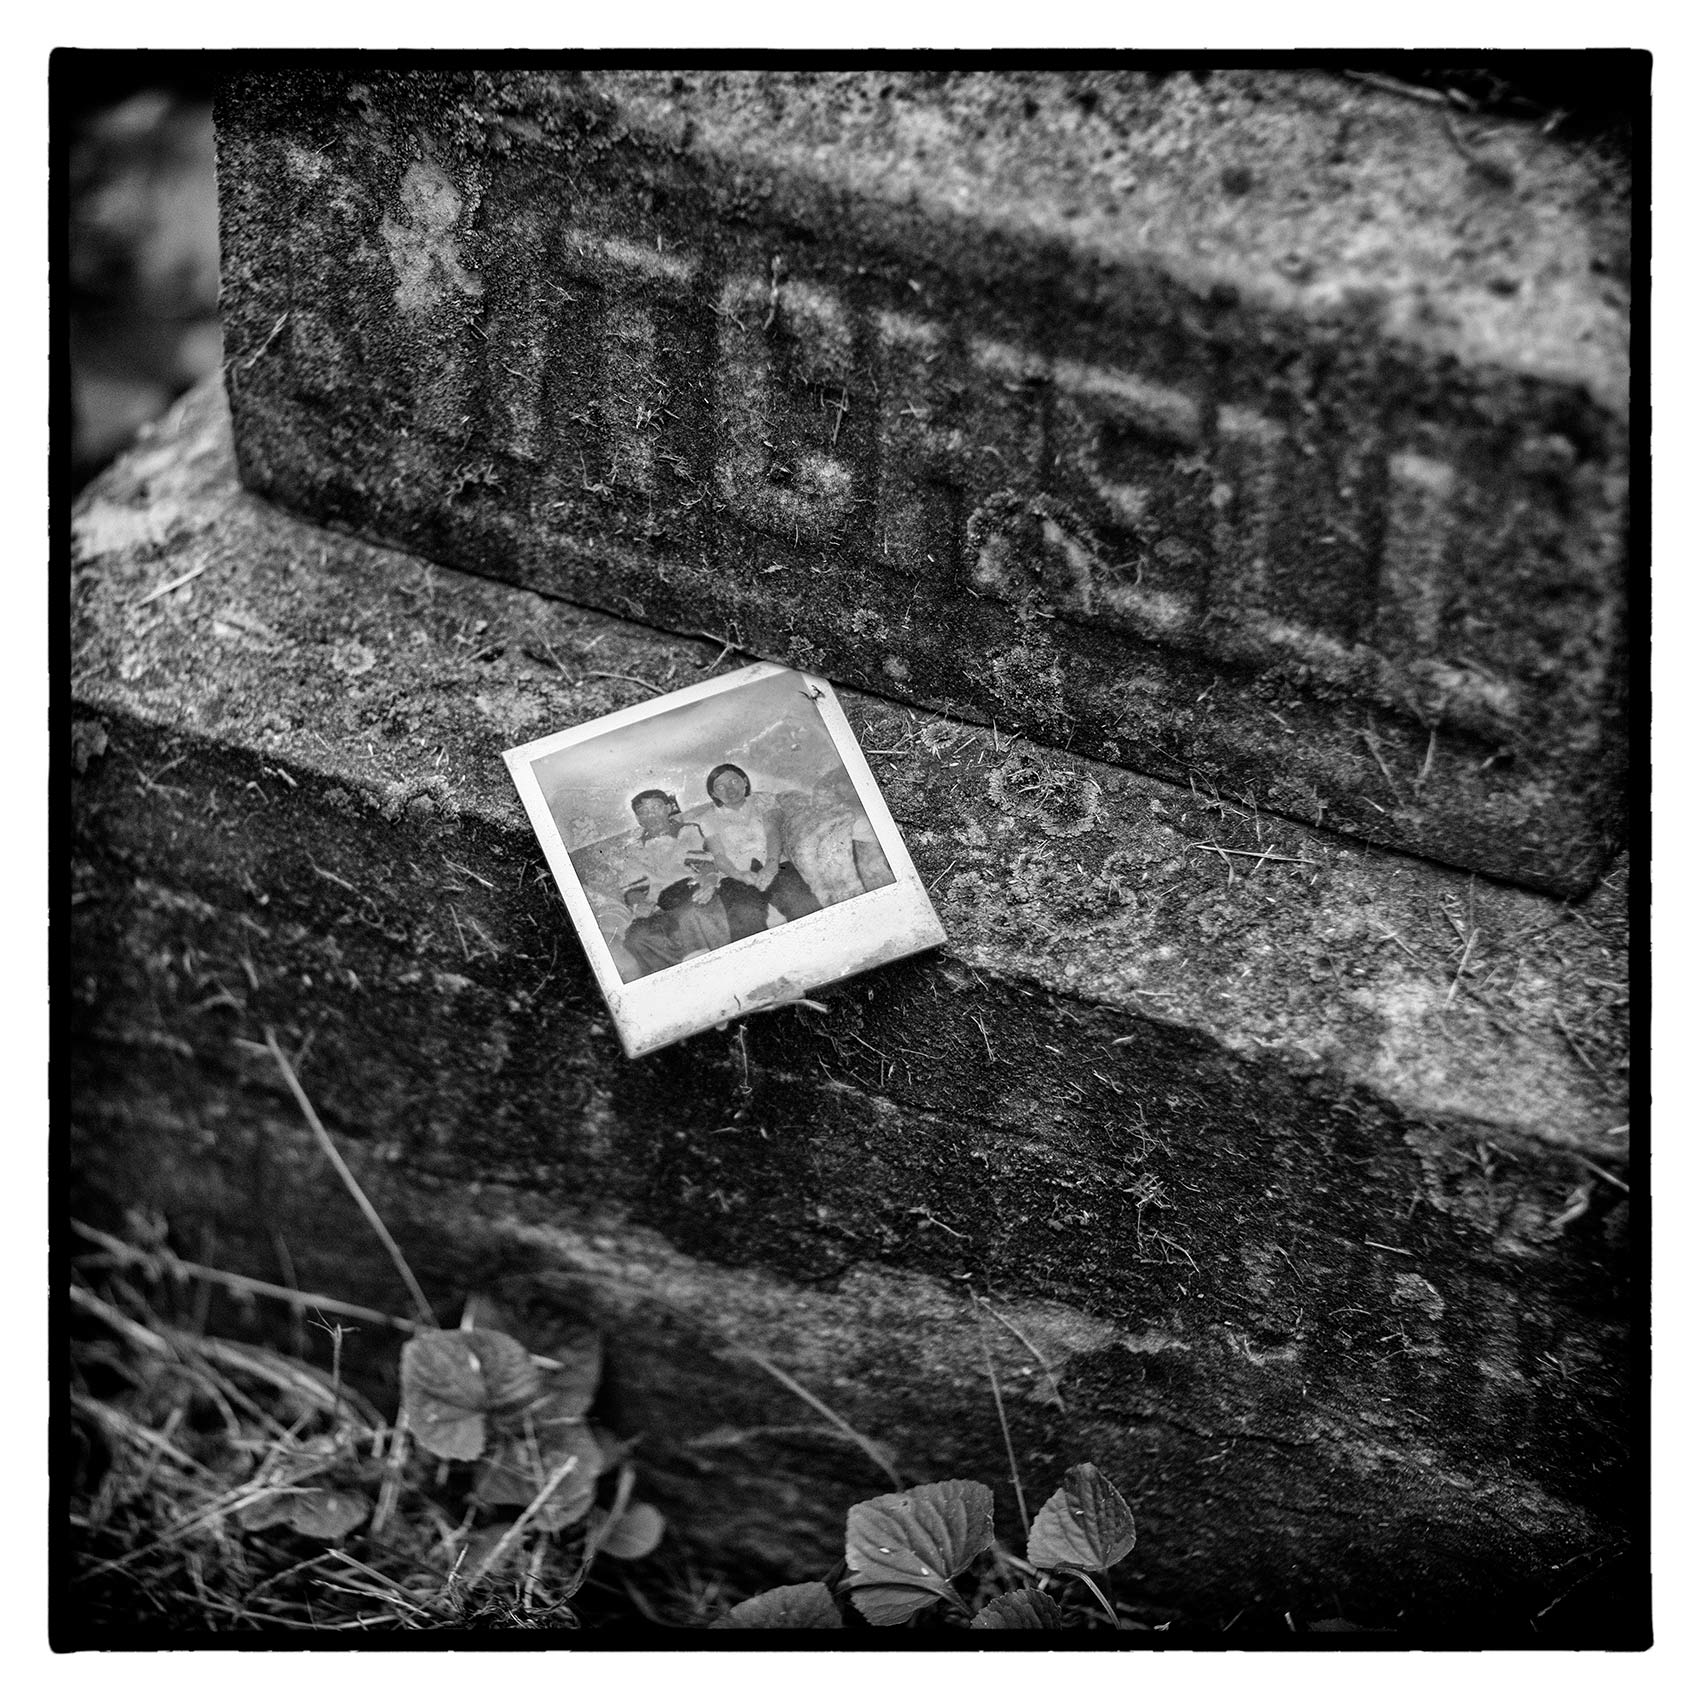 an old polaroid is attached to a stone grave at Torontos St. James Cemetary